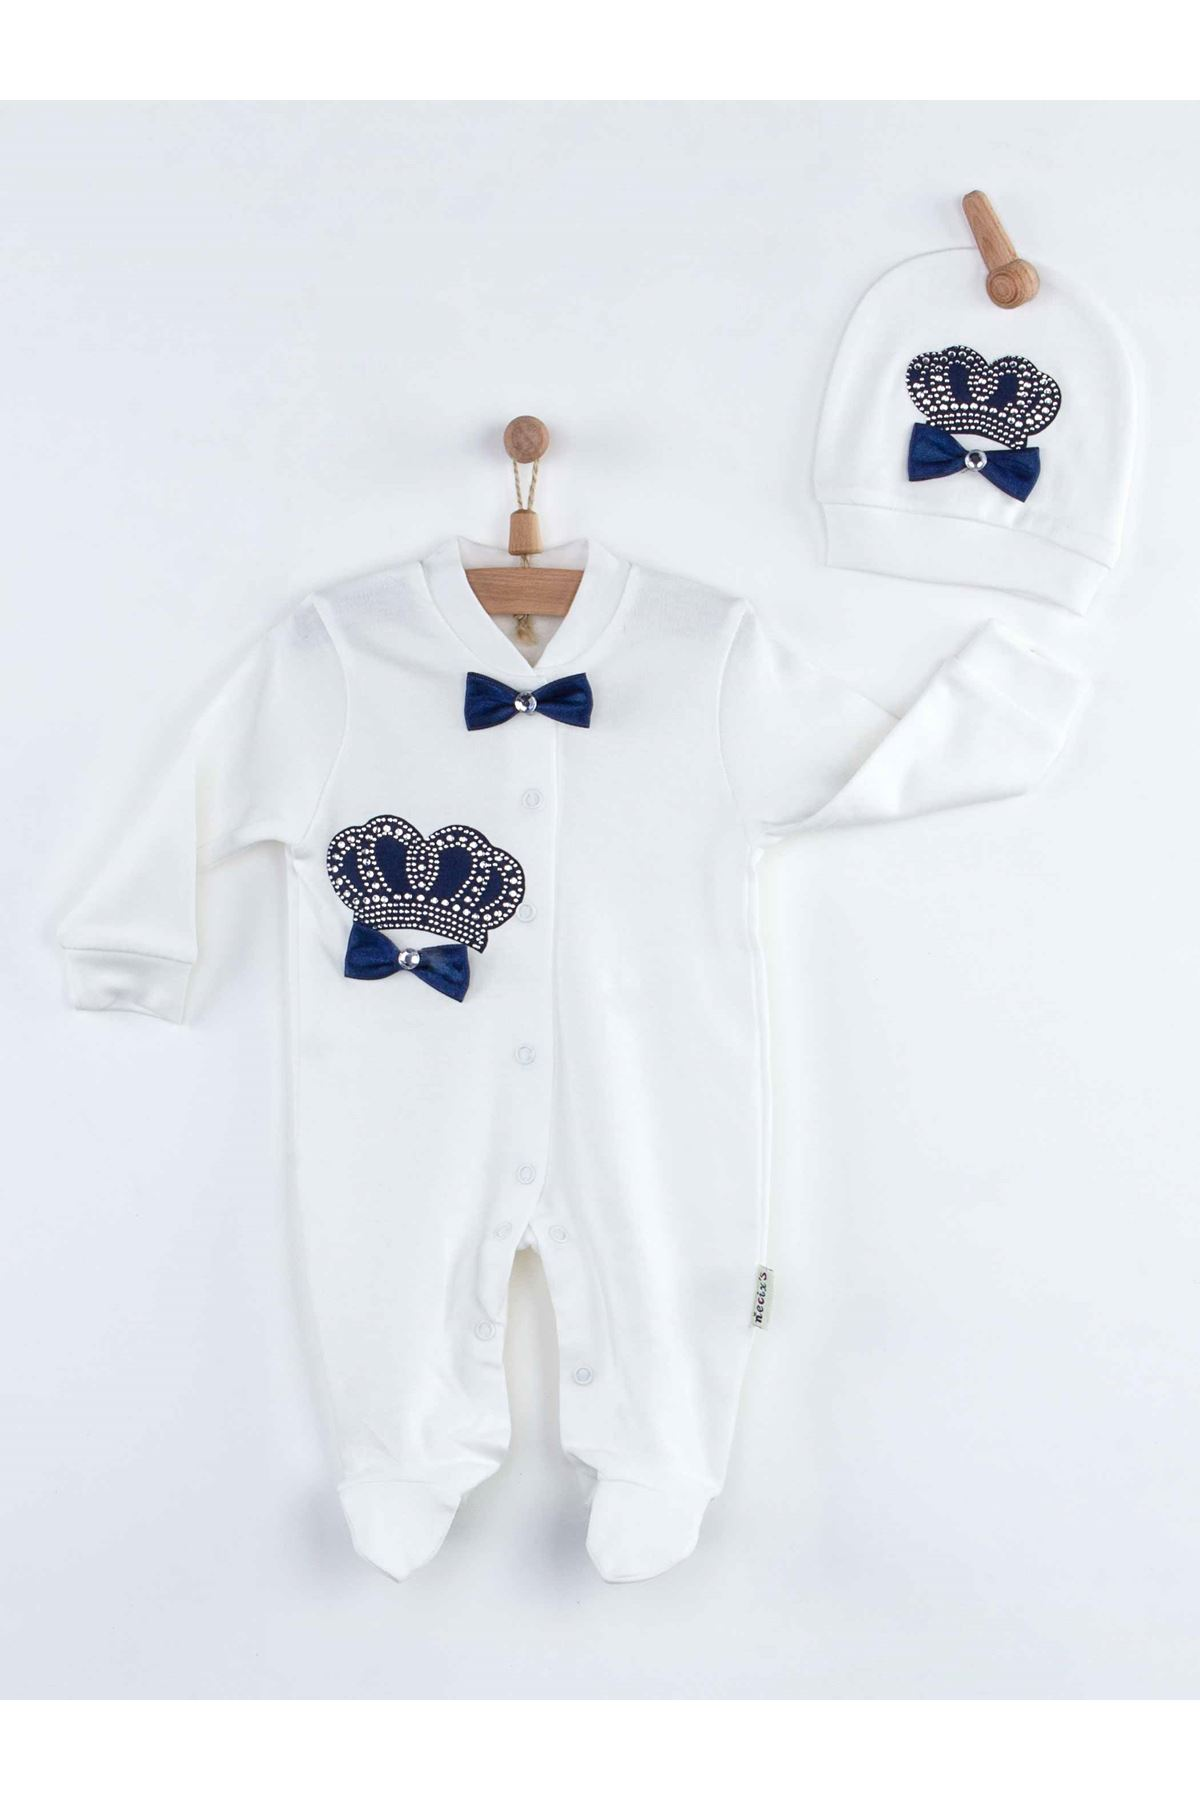 Navy Blue Boys Baby Rompers King Queen Newborn Clothes 3pcs Set Cotton Soft Fabric For Newborn Babies Of Kinds clothing